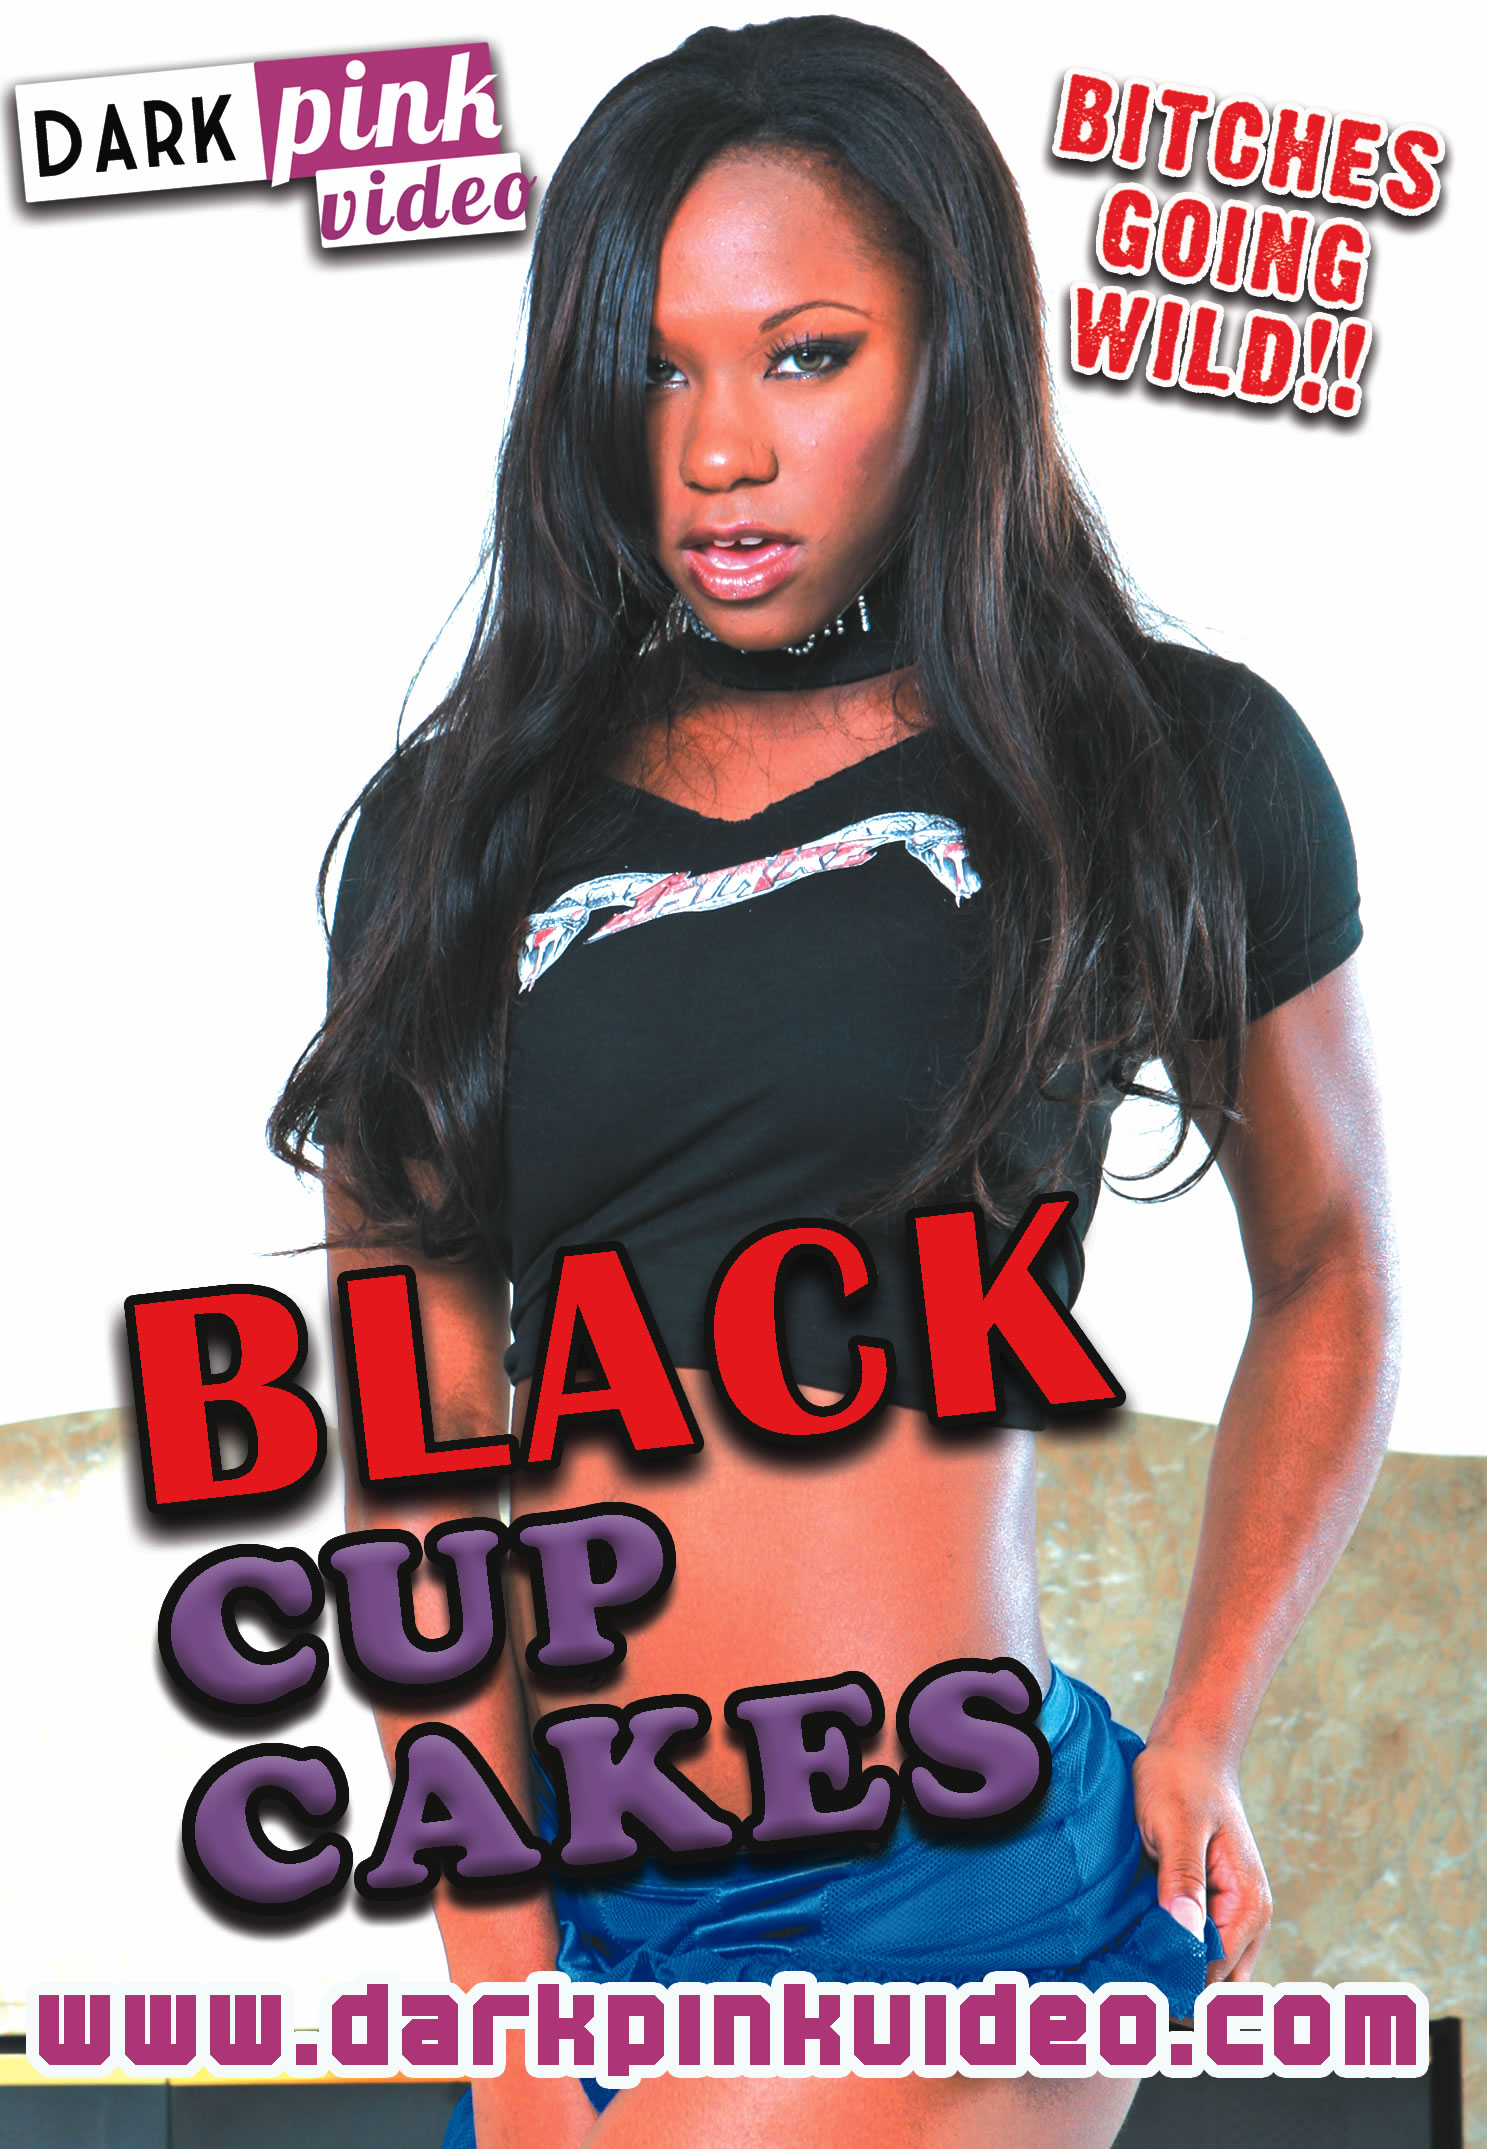 Black Cup Cakes